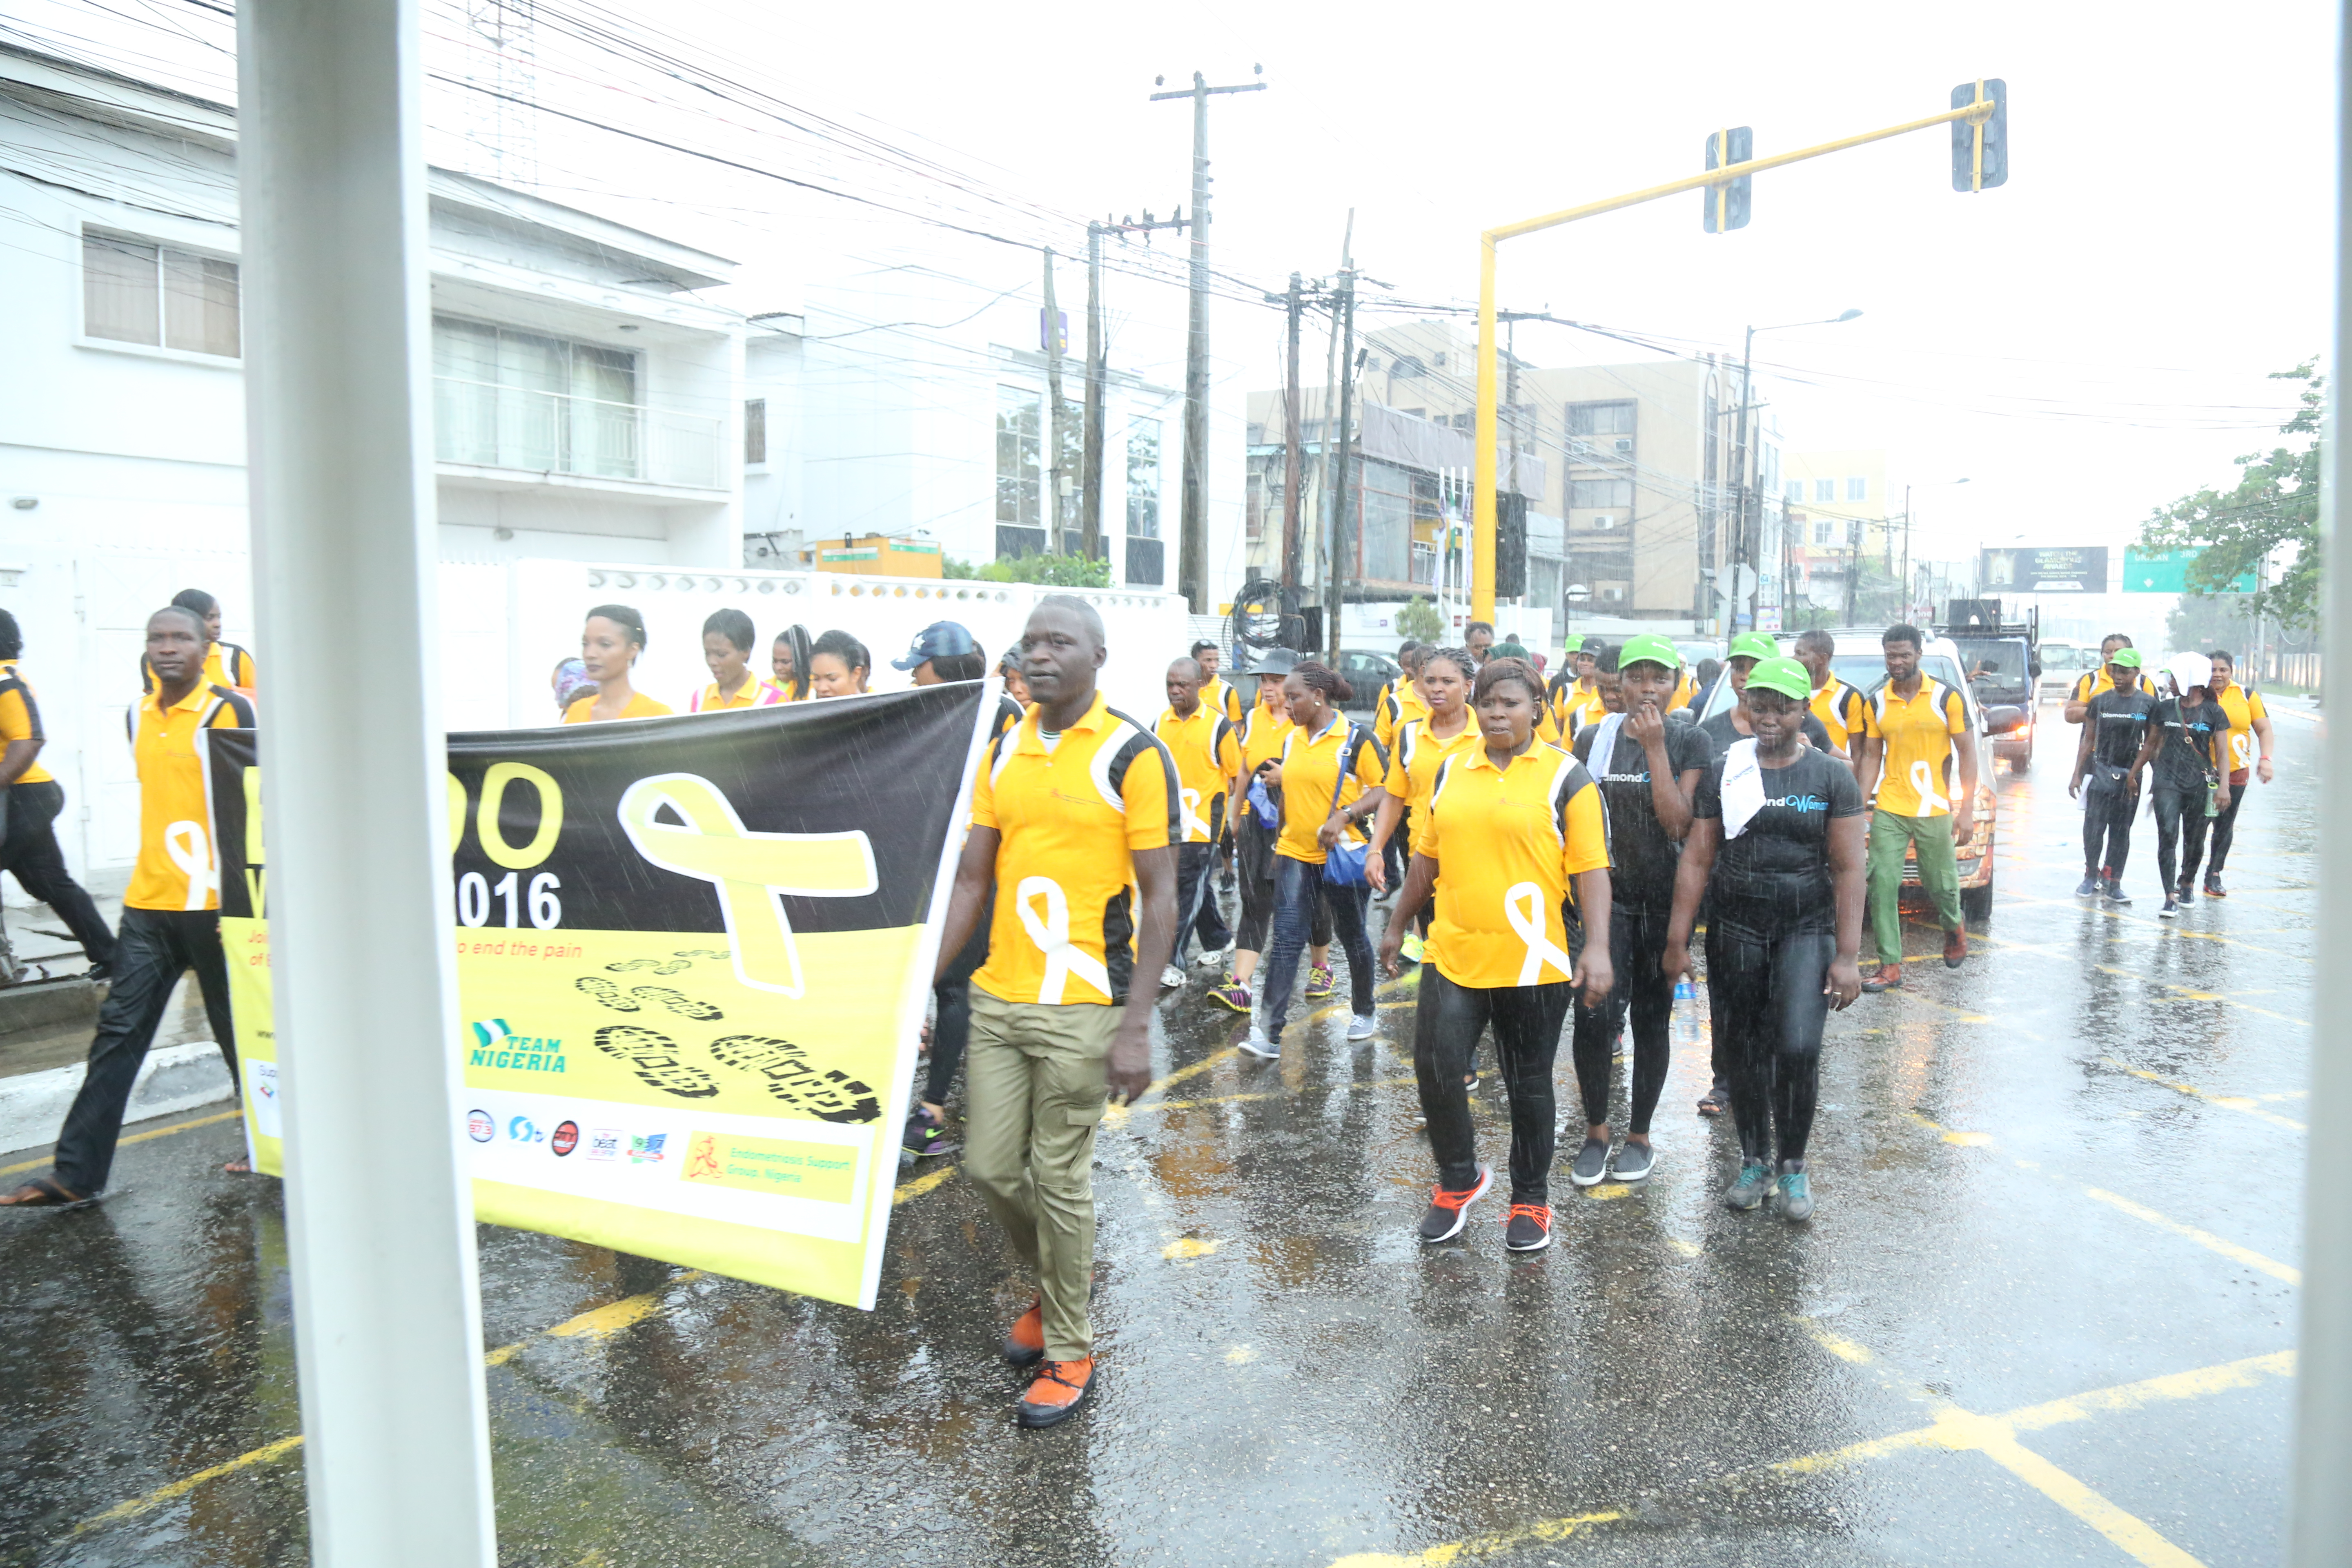 People walking in Nigeria's 2015 Endo Walk